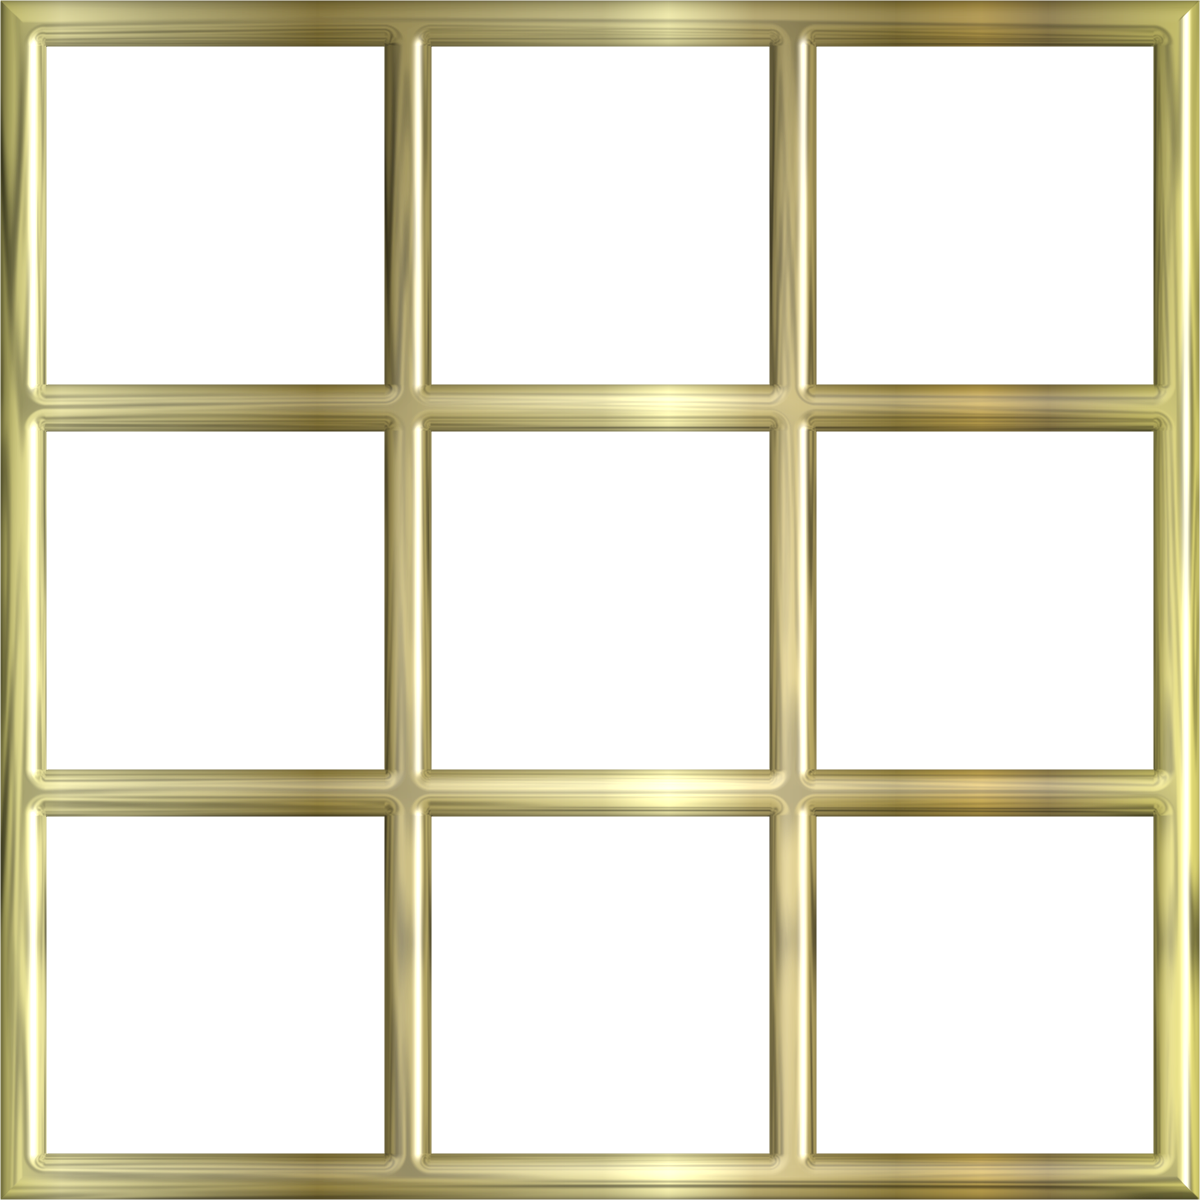 Gold frame border window free images at for Window design cartoon